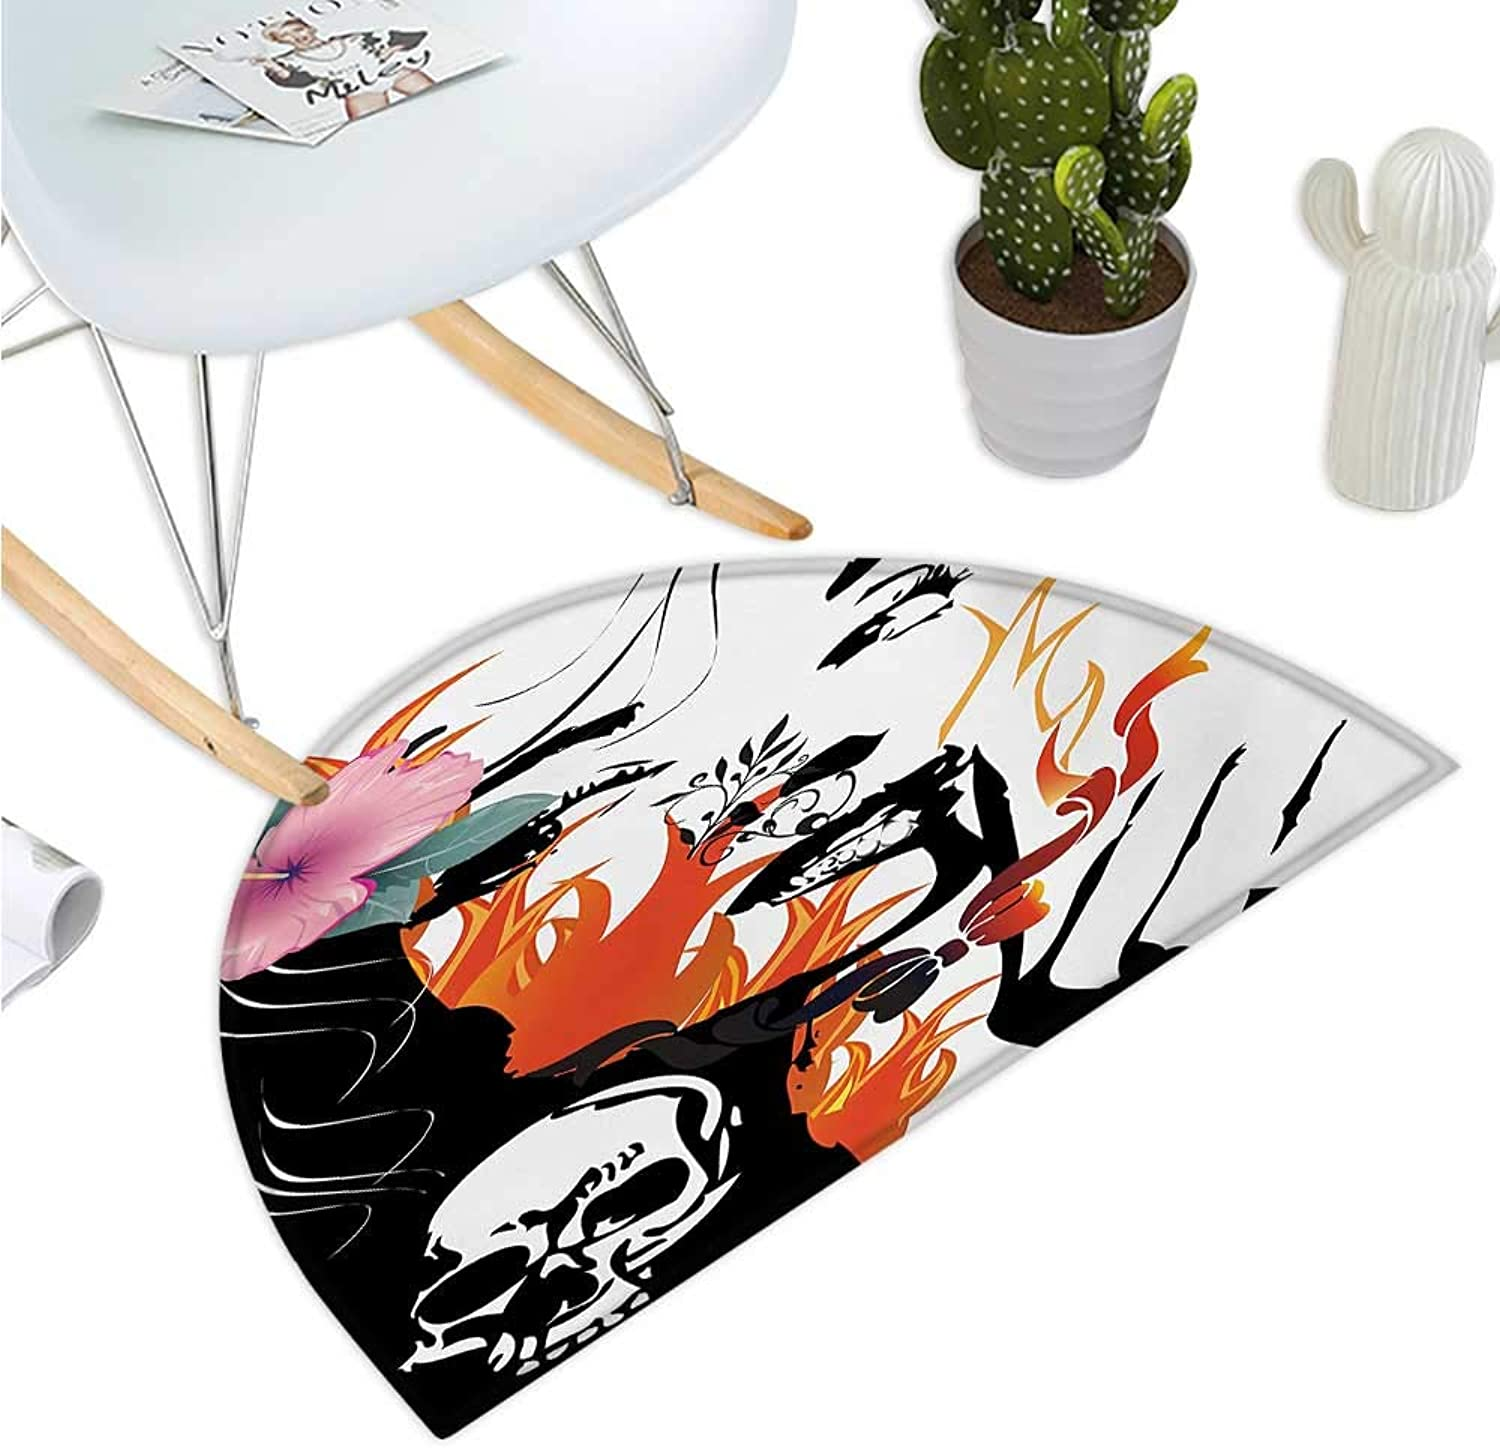 Tattoo Semicircular Cushion Attractive Women with Pink Flower in her Hair Near a Skull Design Halfmoon doormats H 43.3  xD 64.9  orange Pink Black and White